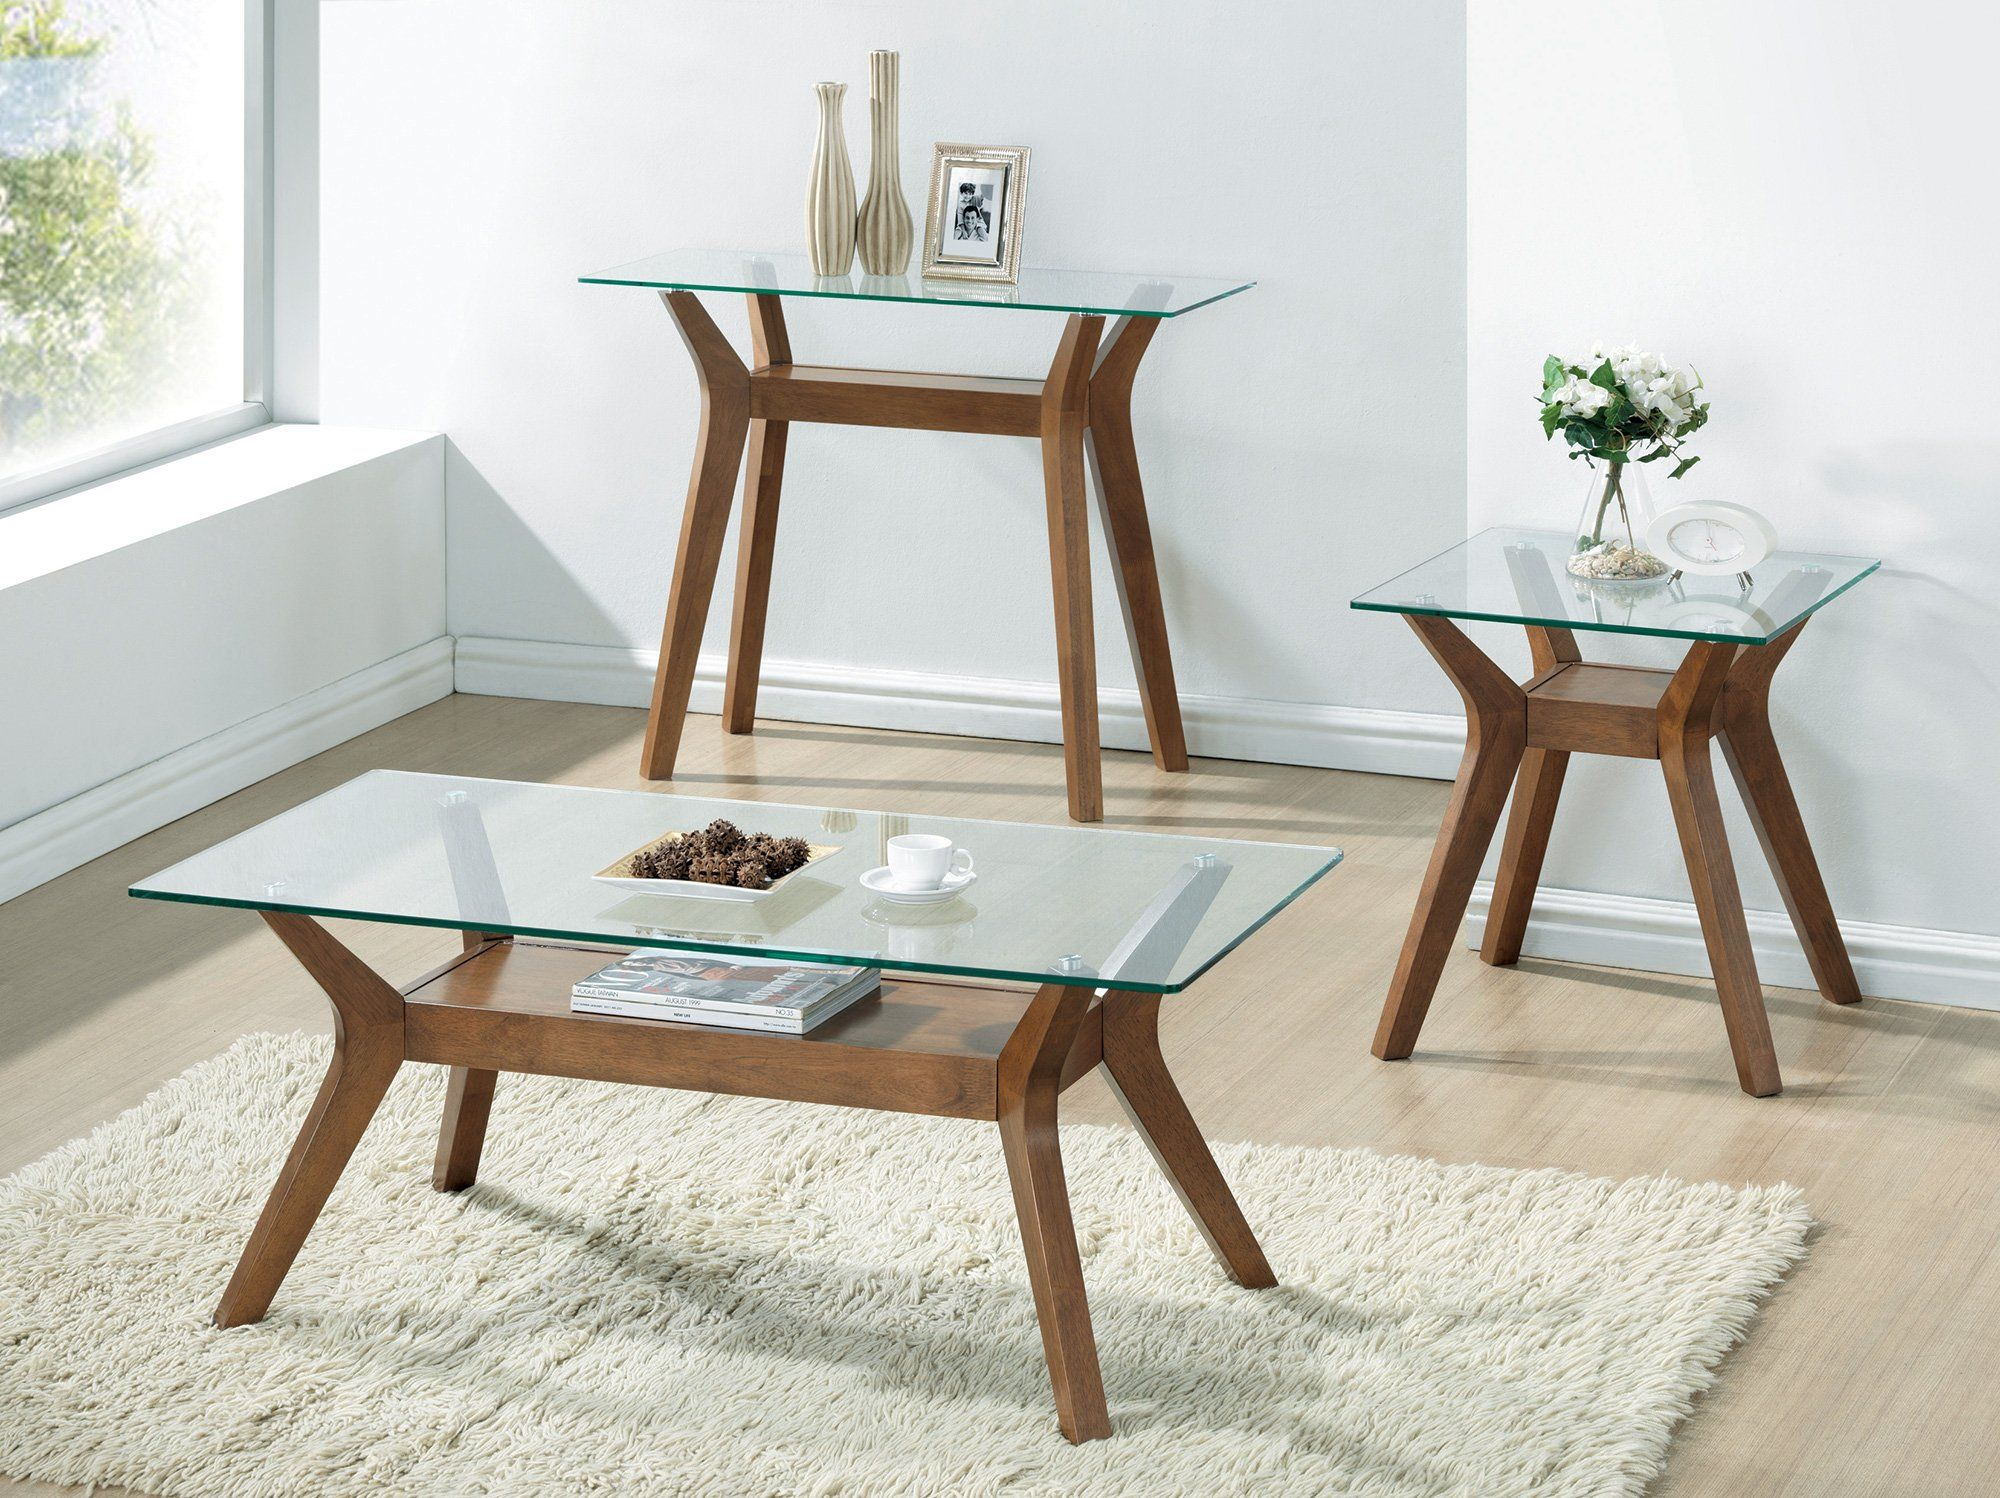 Coaster Glass Top End Table In Nutmeg A Lot More Details Can Be Discovered At The Photo Link T Coffee Table Living Room Coffee Table Glass Top End Tables [ 1498 x 2000 Pixel ]